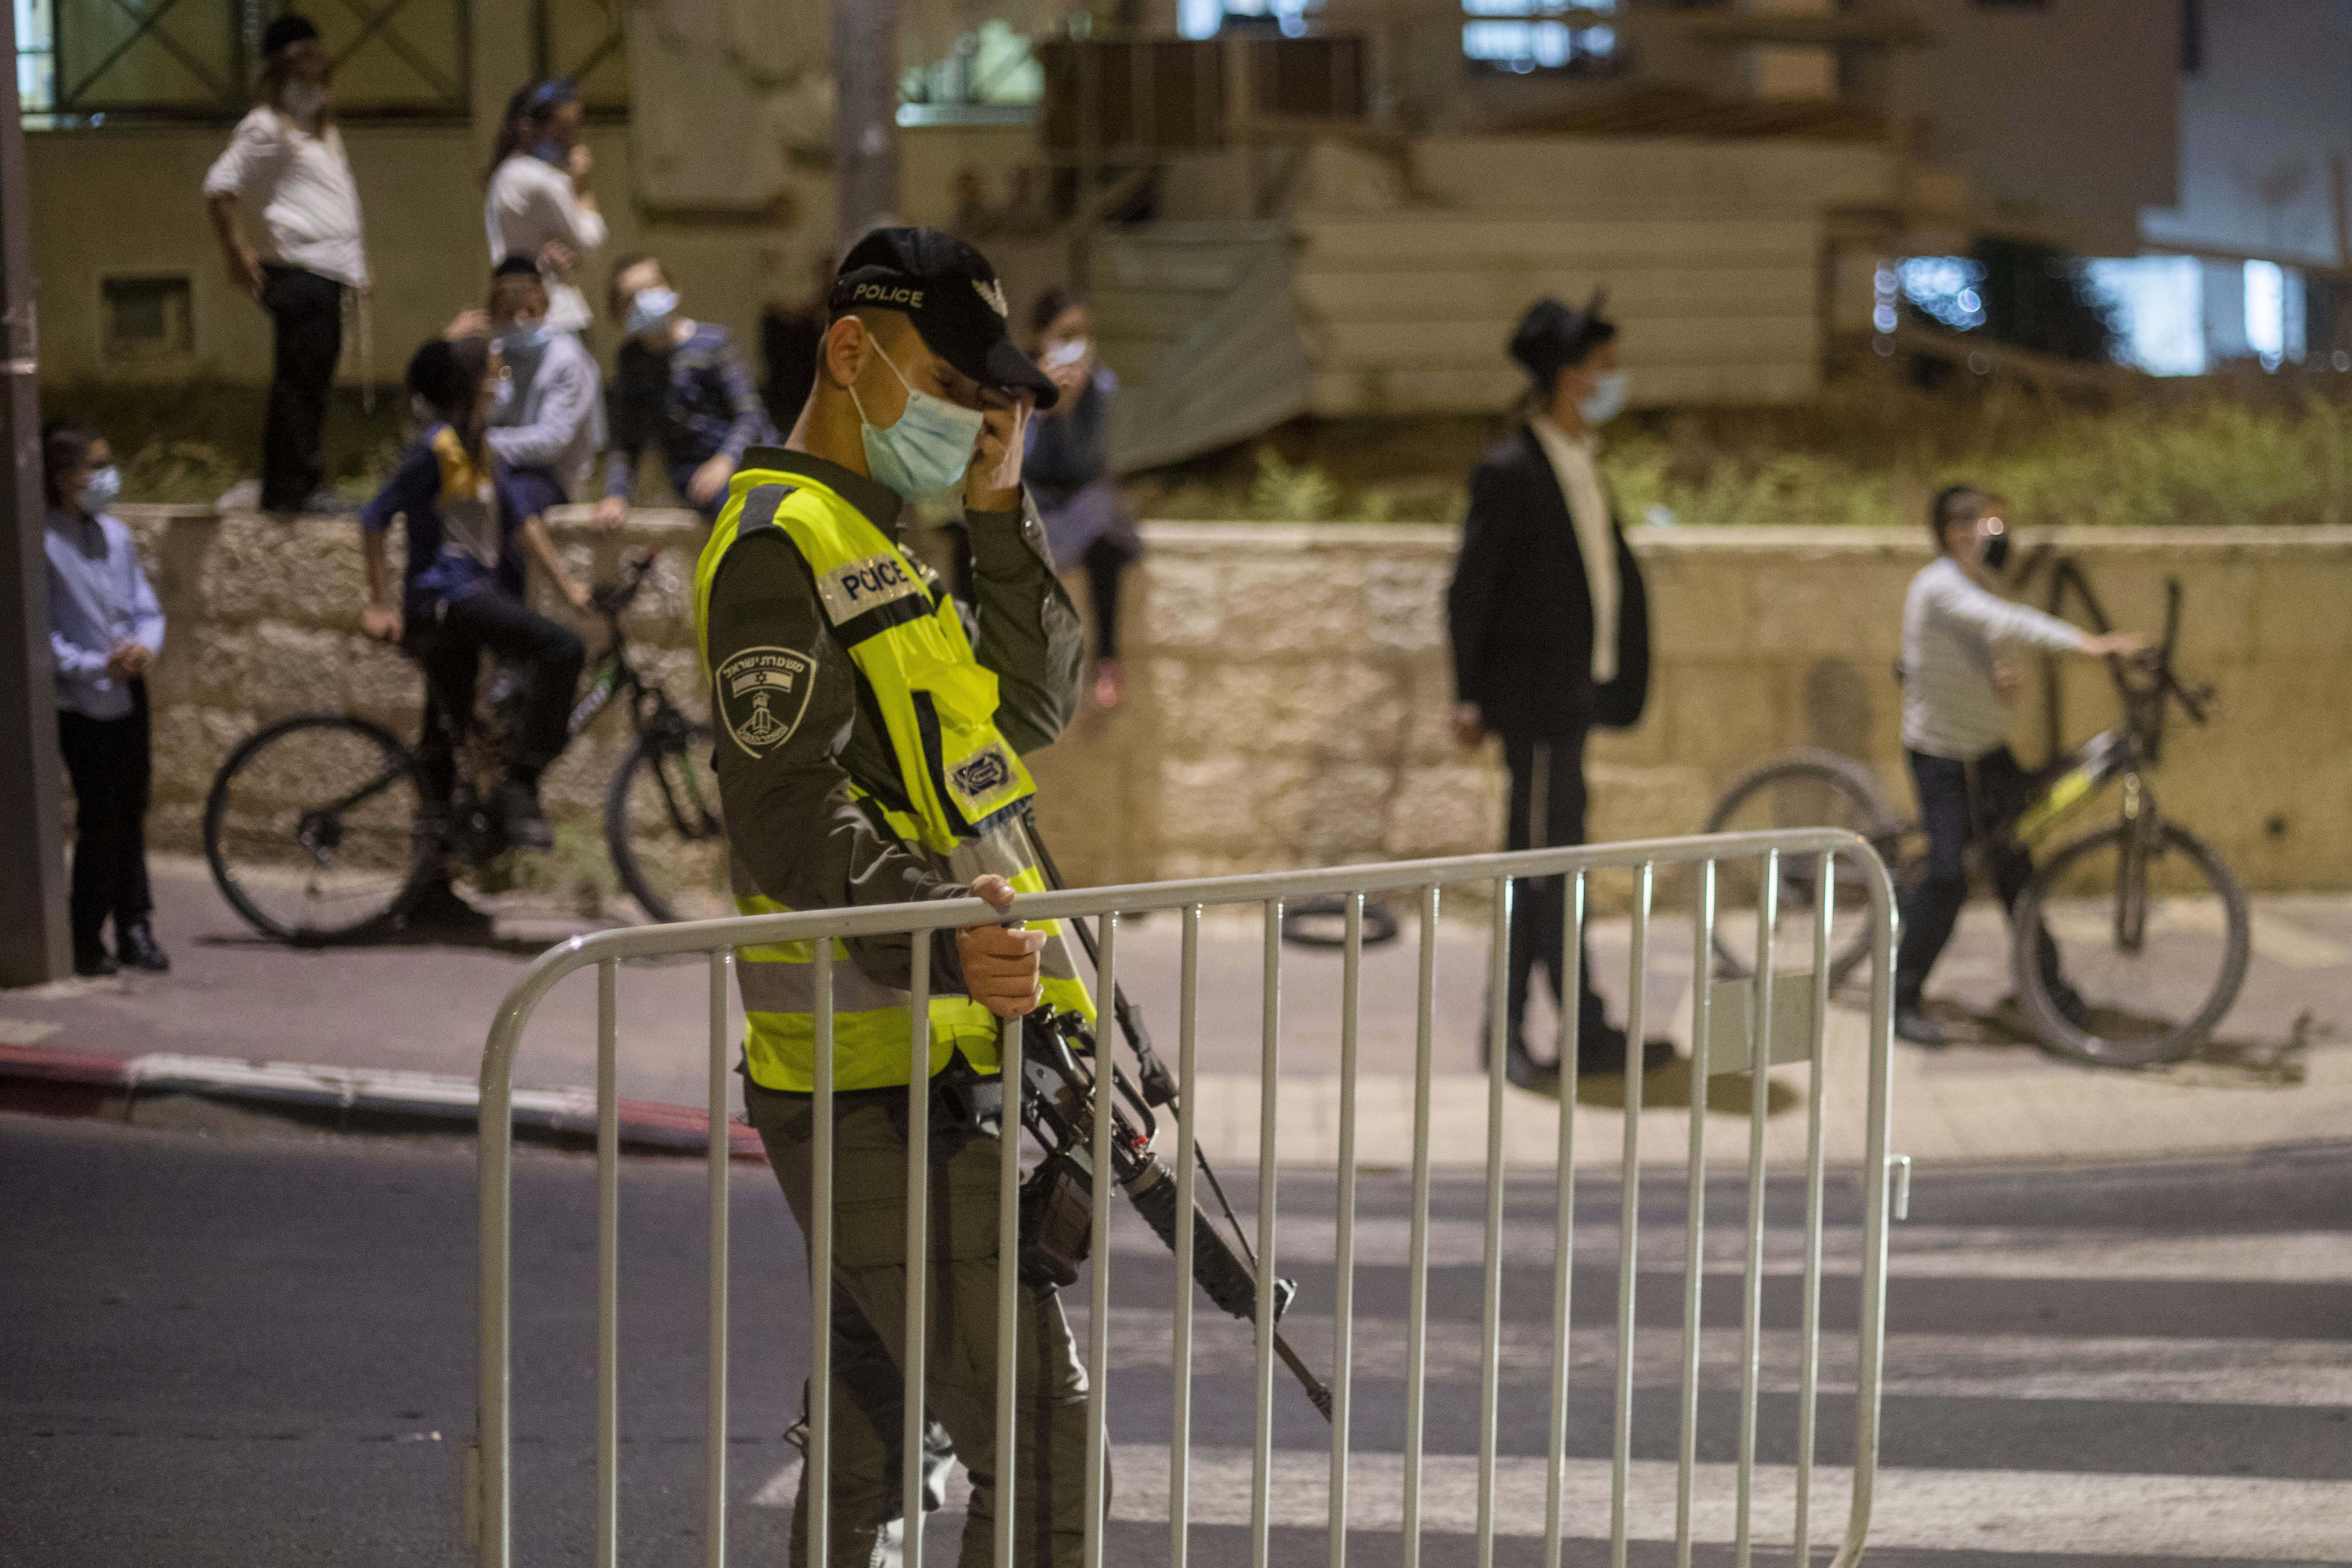 An Israeli border police man setups a barrier as ultra-Orthodox Jews wearing face masks amid the coronavirus pandemic wait to cross the street during an overnight curfew in Beit Shemes, Israel, Tuesday, Sept. 8, 2020. Israeli Prime Minister Benjamin Netanyahu announced overnight curfews on some 40 cities and towns hit hard by the coronavirus. (AP Photo/Ariel Schalit)